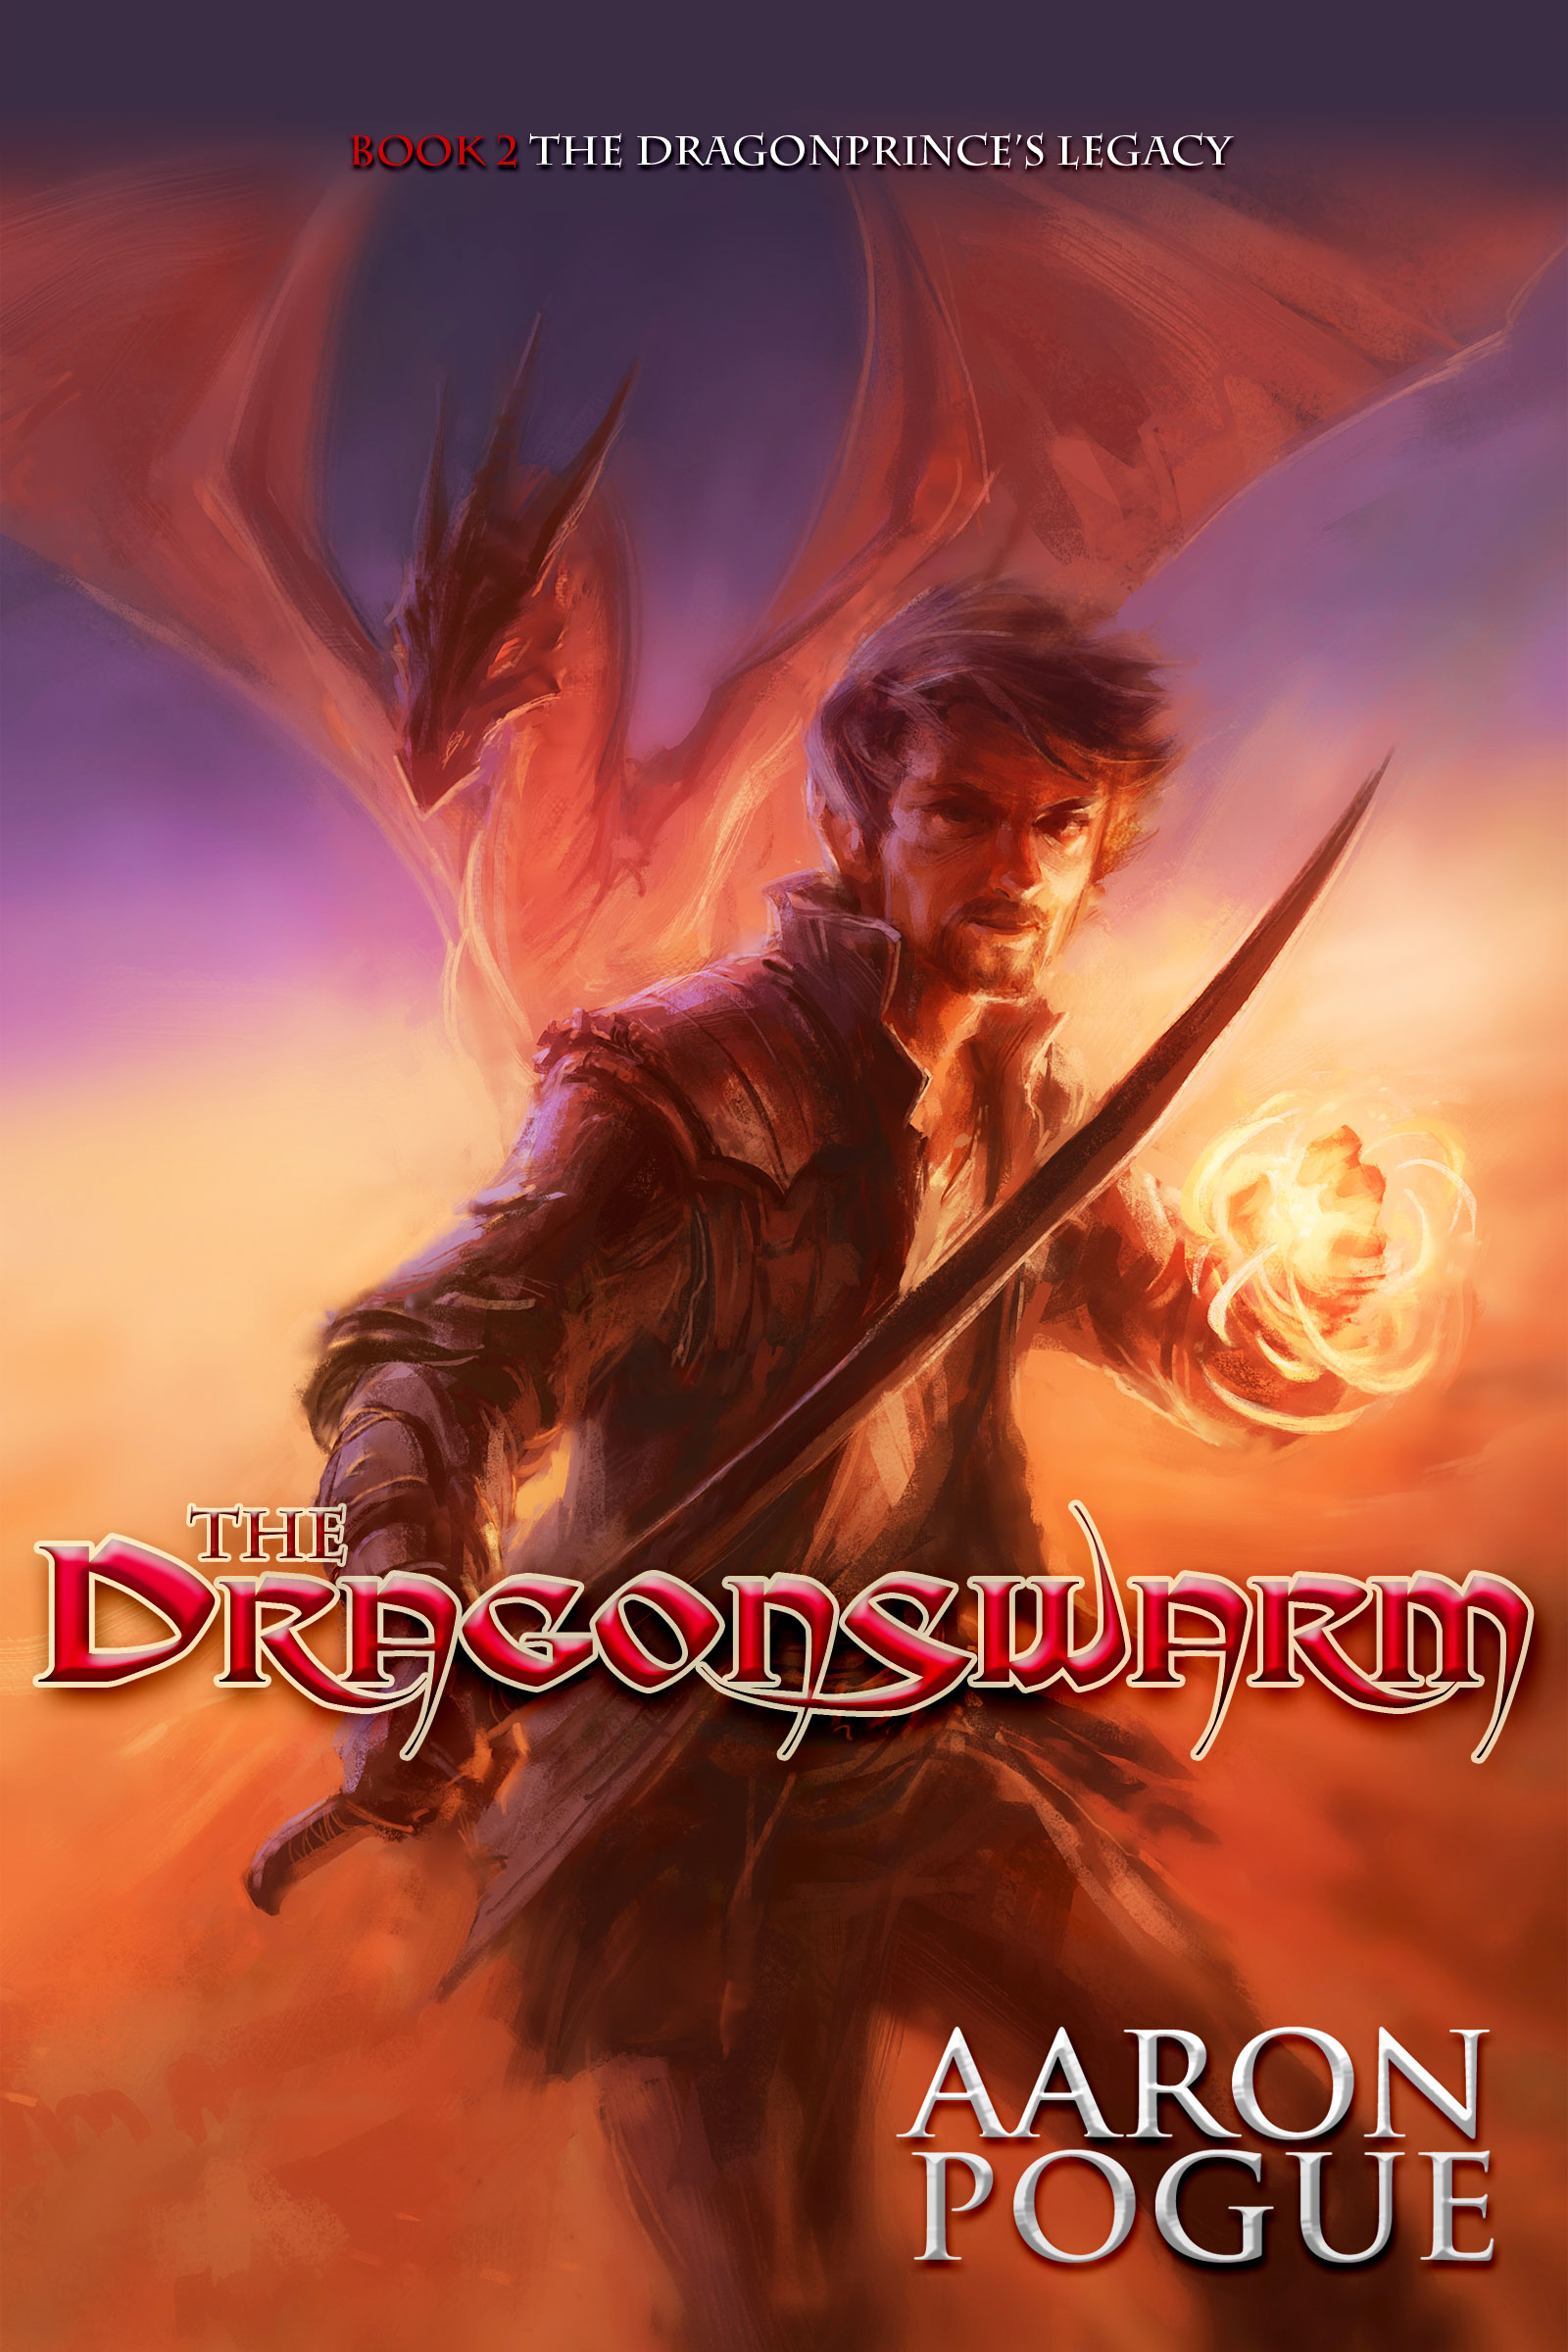 The Dragonswarm at Consortium Books